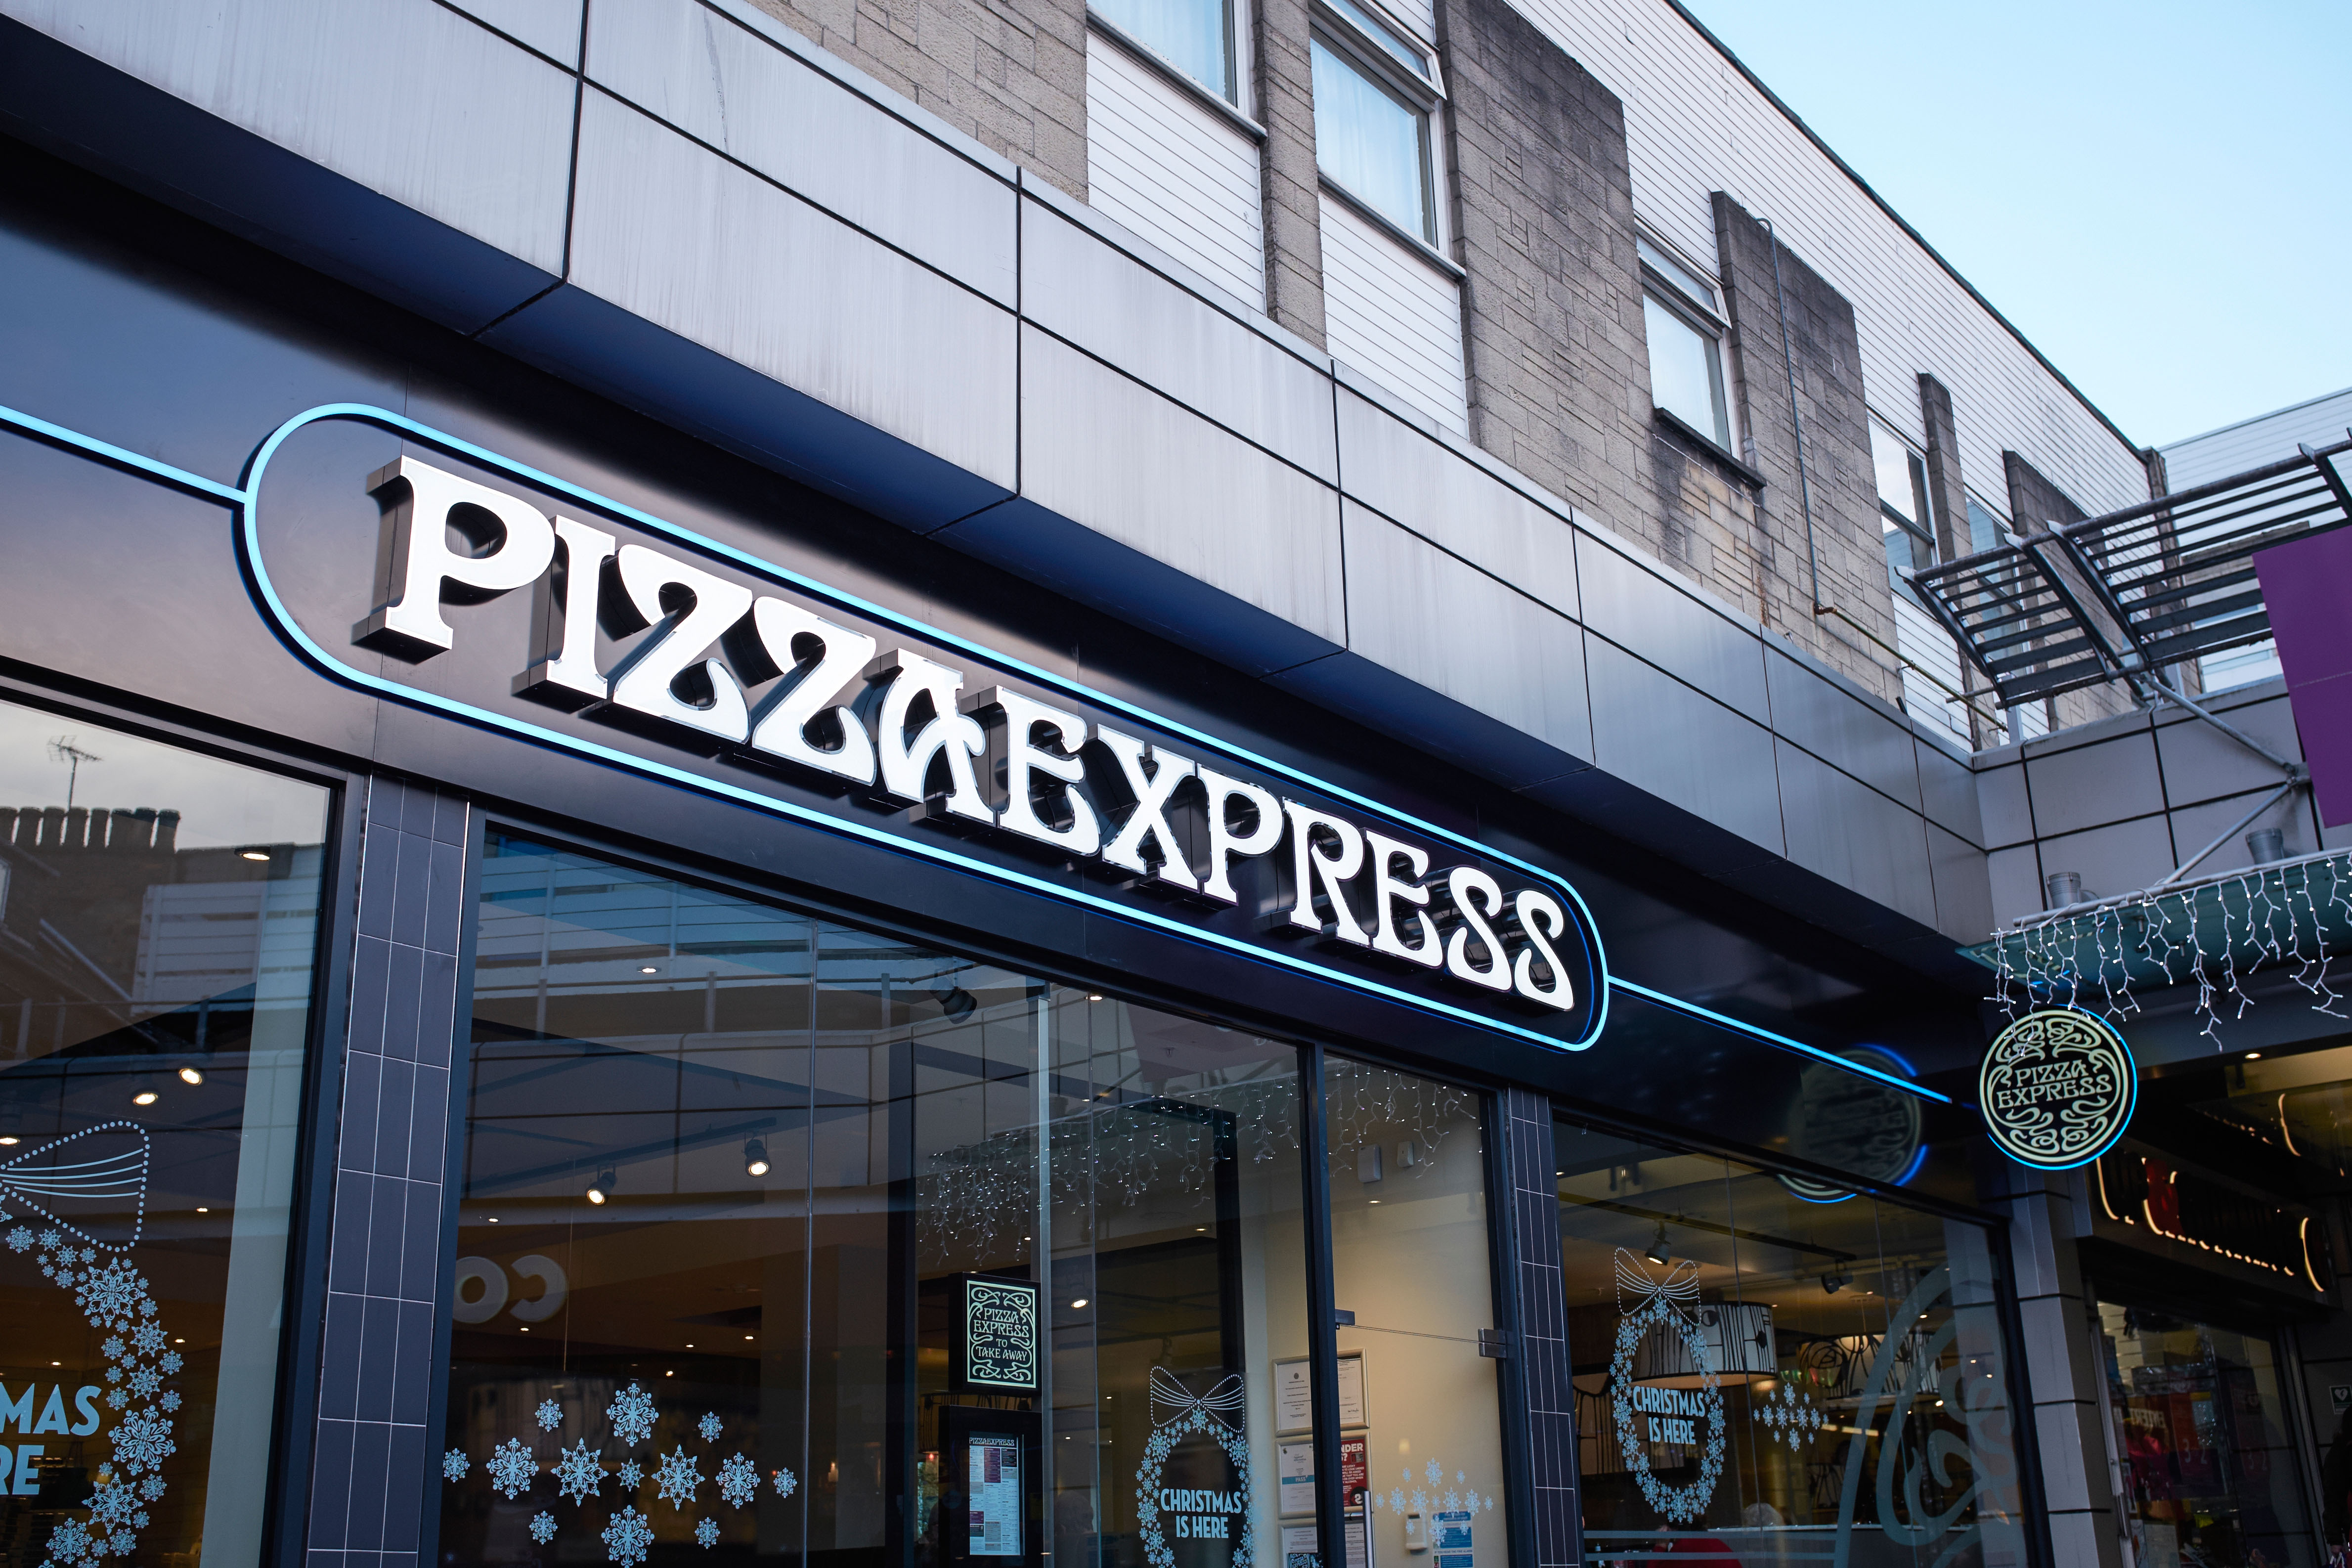 Exterior Of A Pizza Express Restaurant In Stirling City